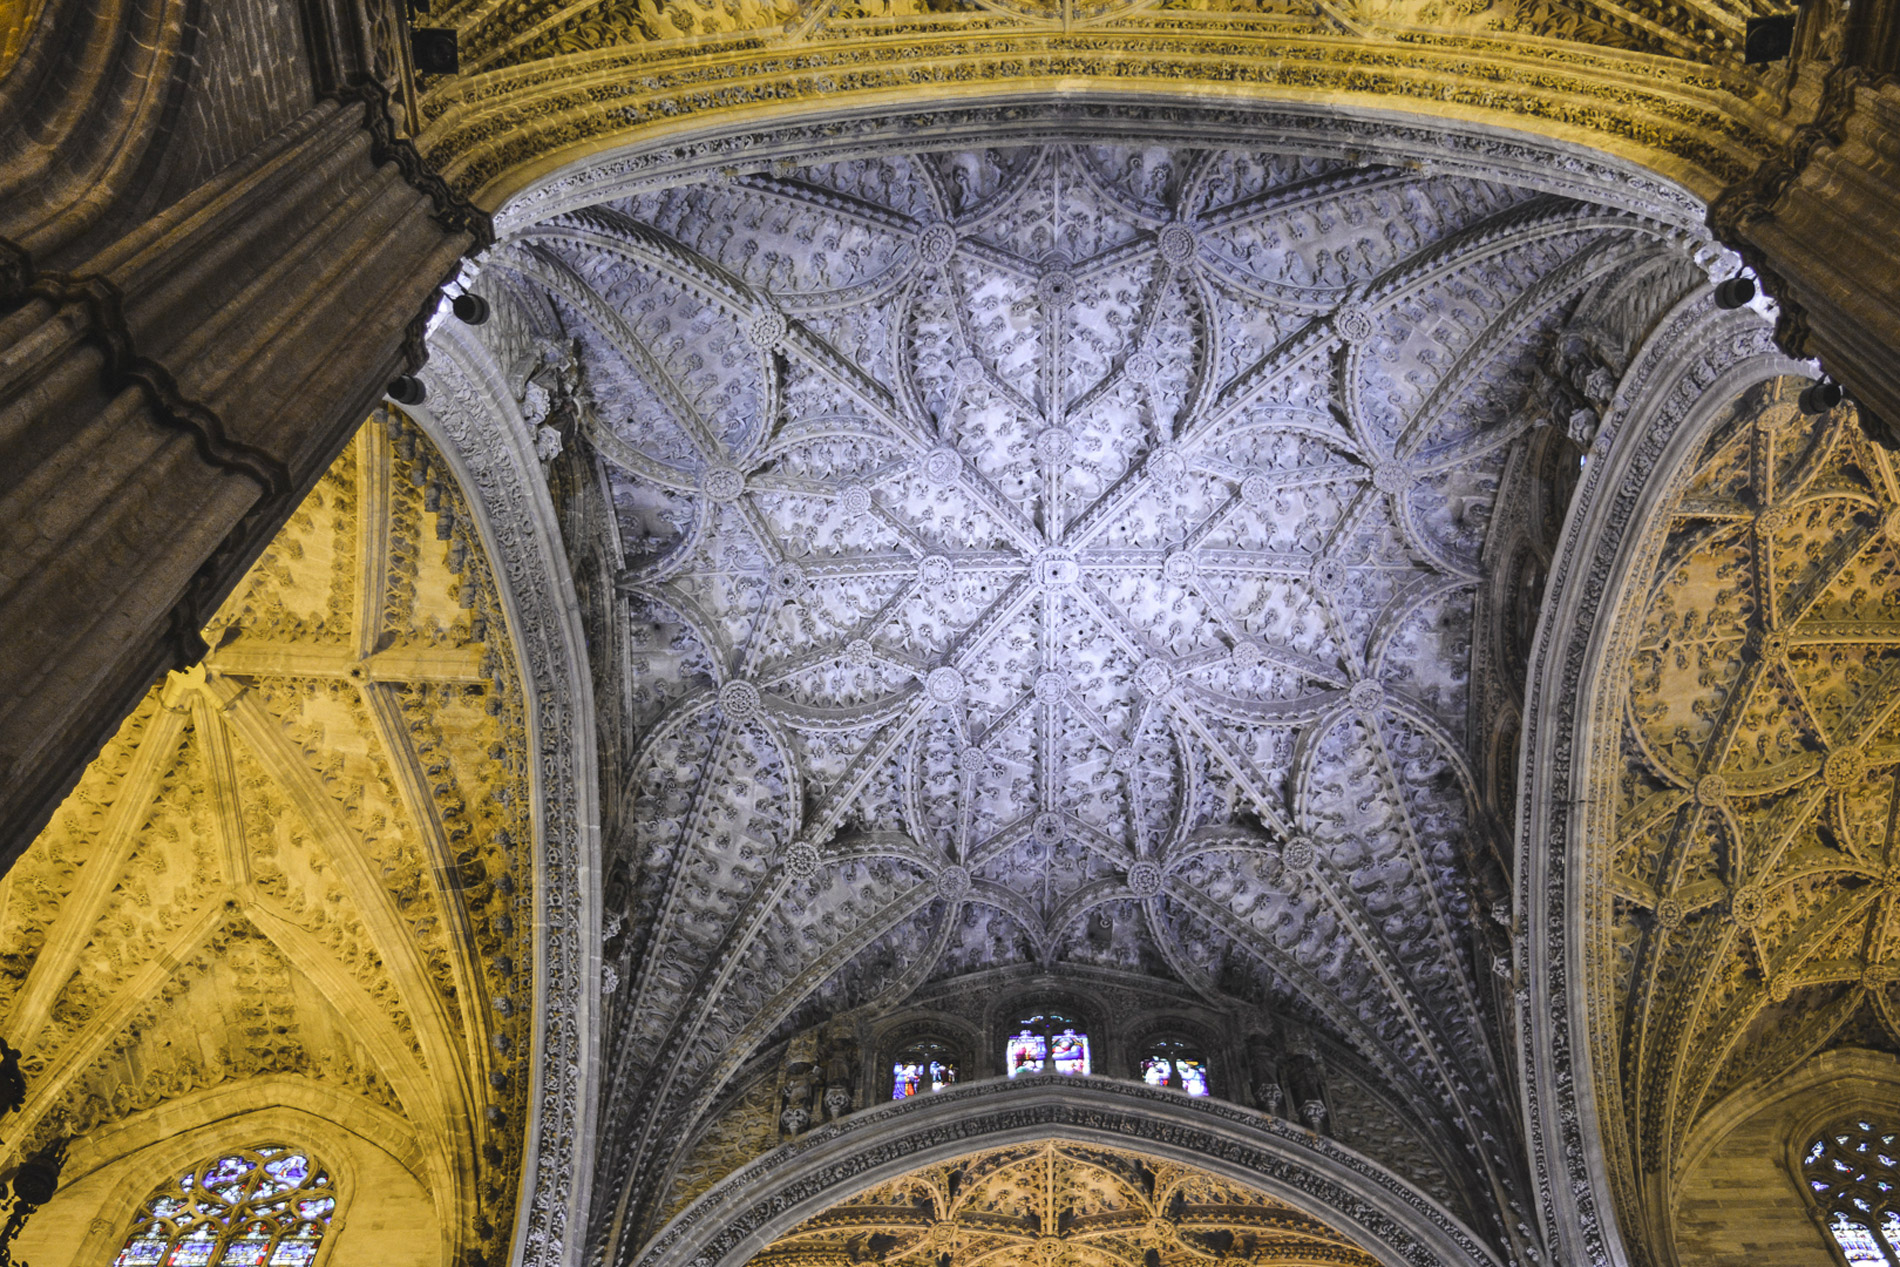 Details of the Cathedral's ceiling one of the best known Seville attractions